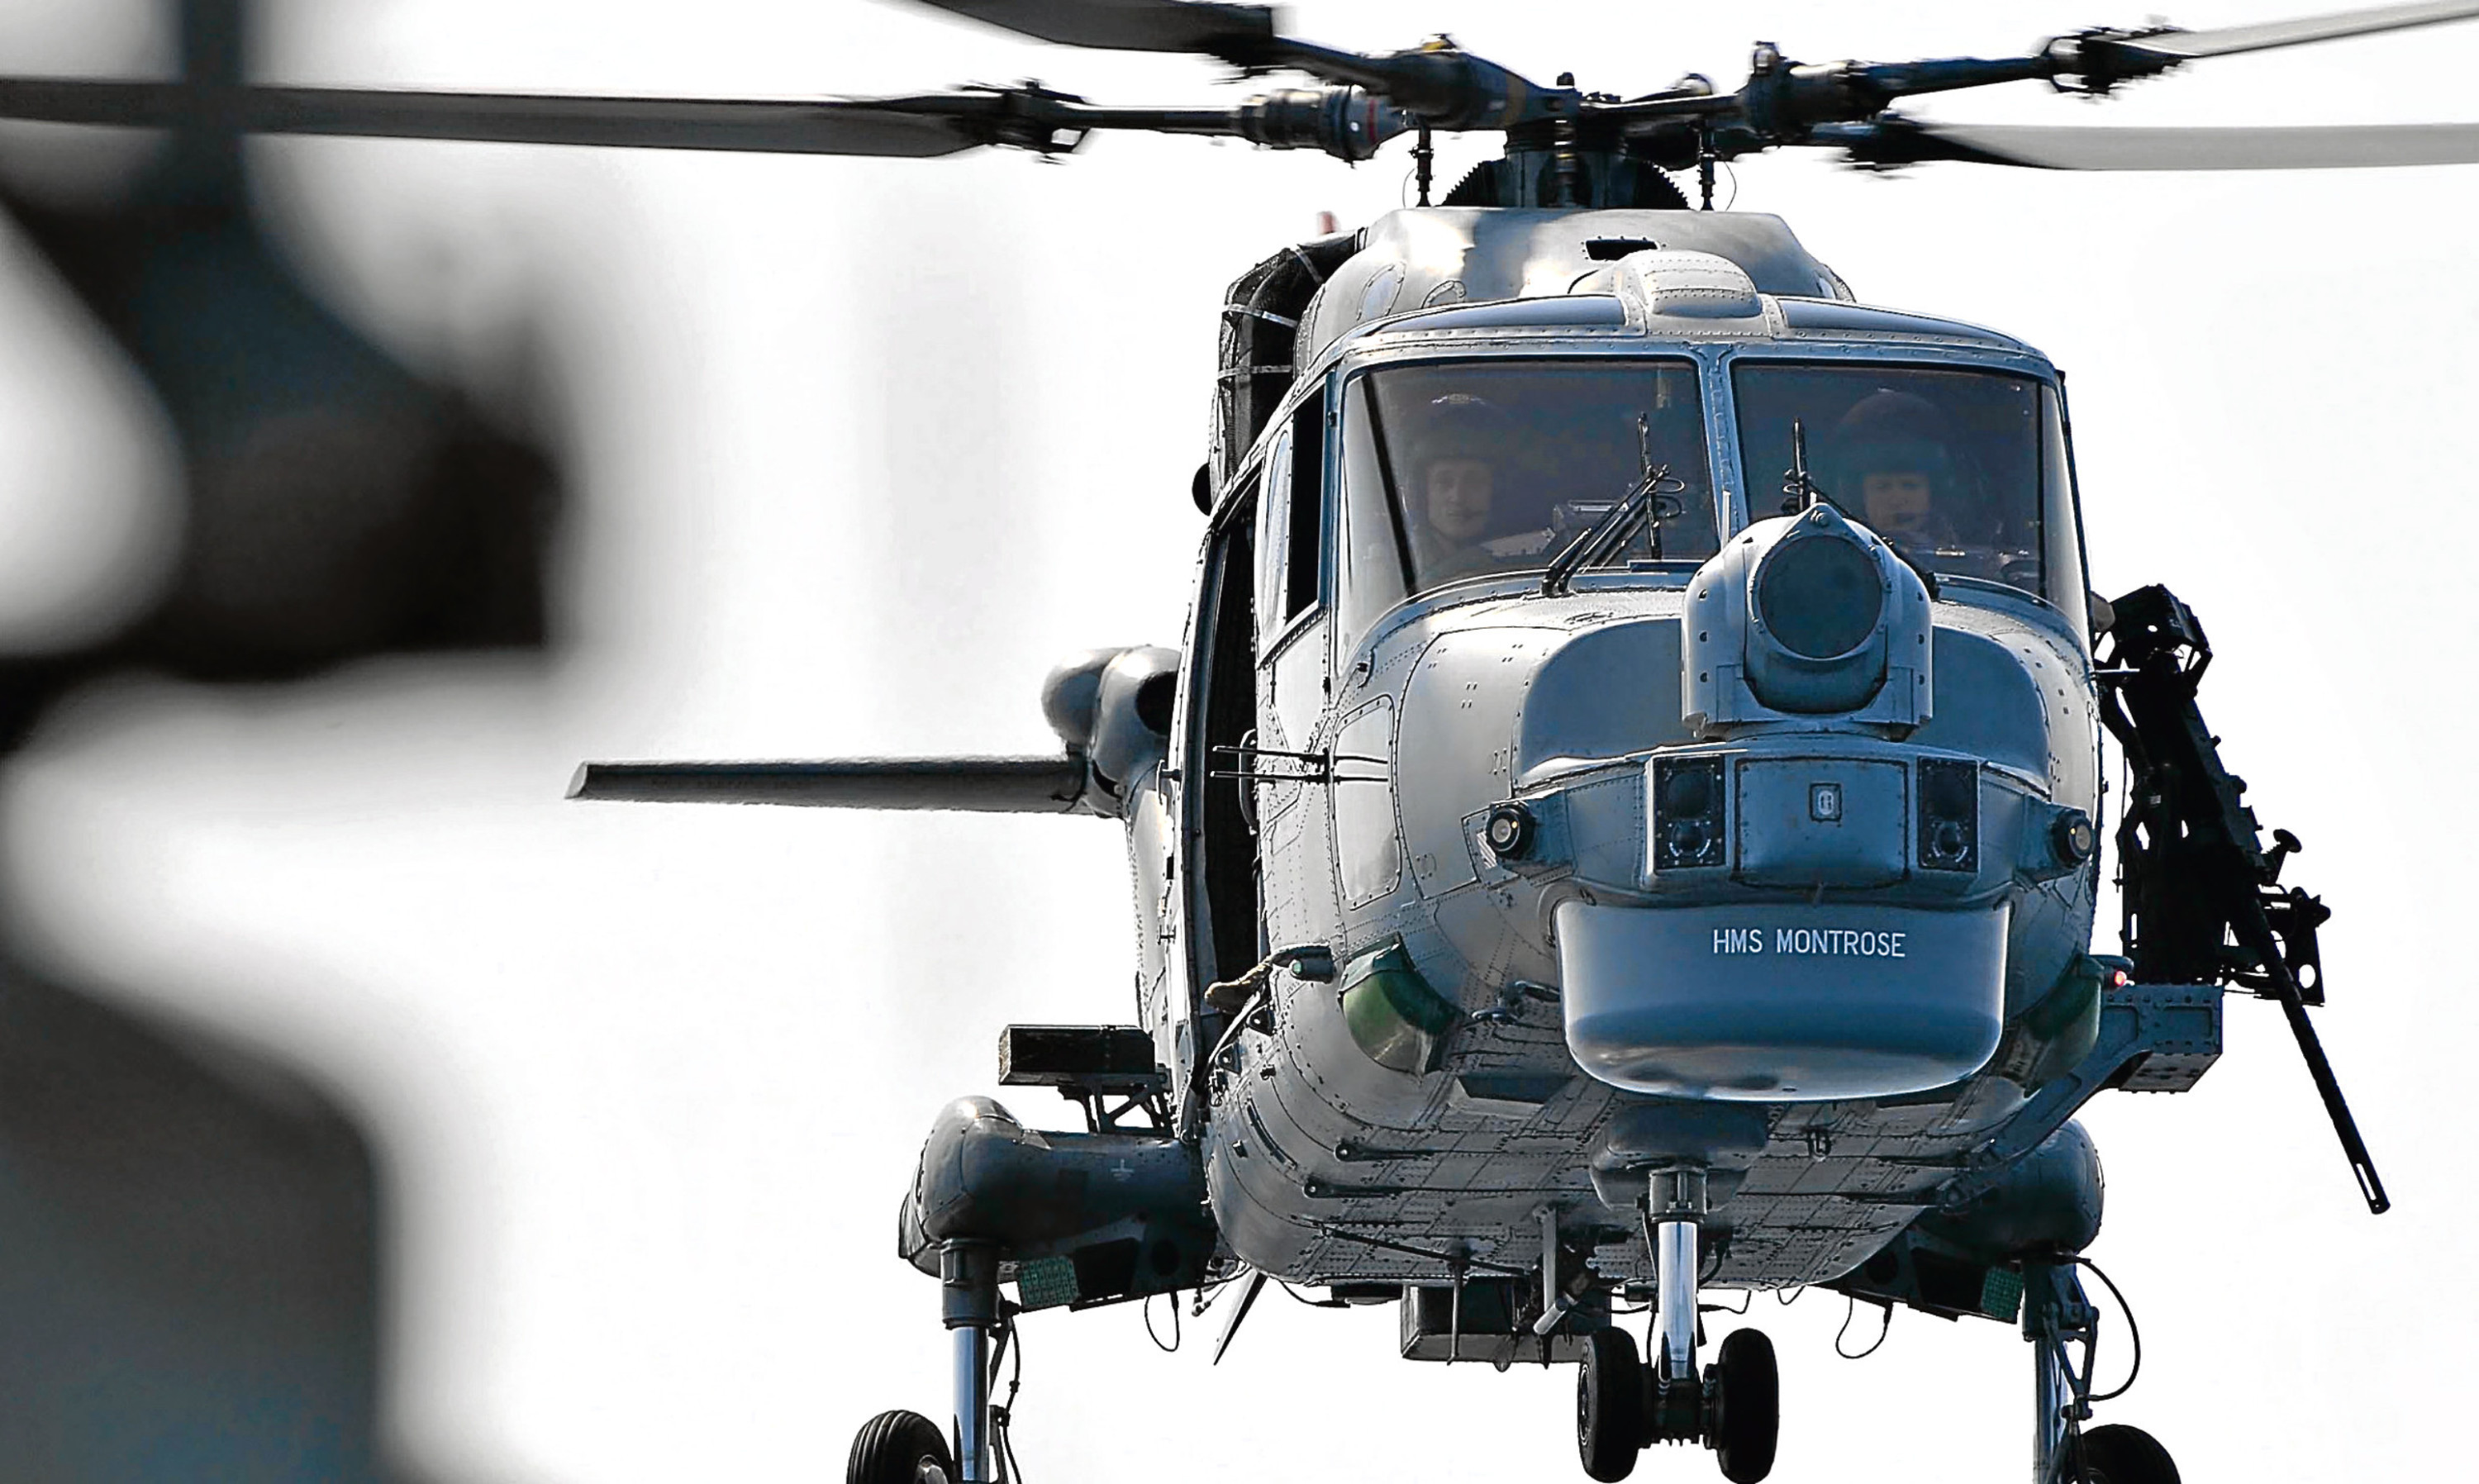 ATL will maintain the GEM turbine in Lynx helicopters.